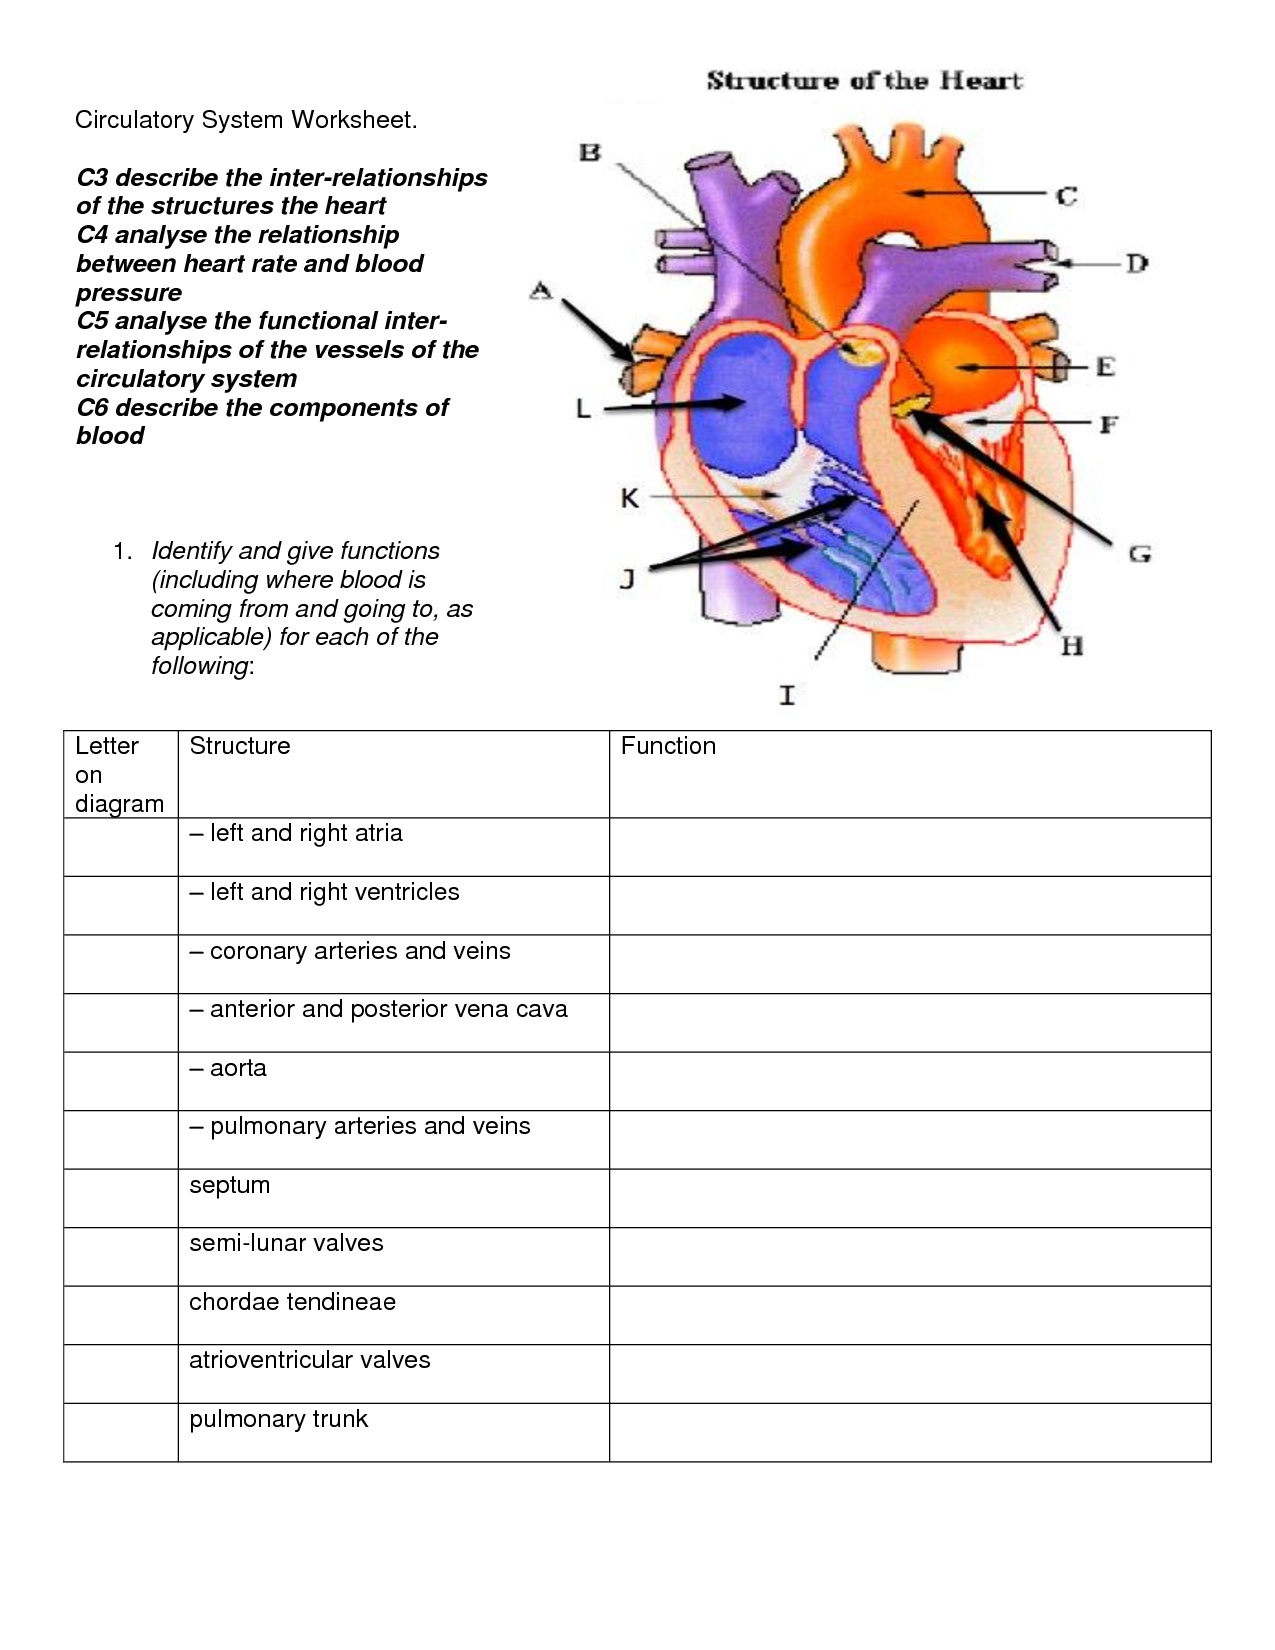 Circulatory System Diagram Worksheet | Circulatory System ...